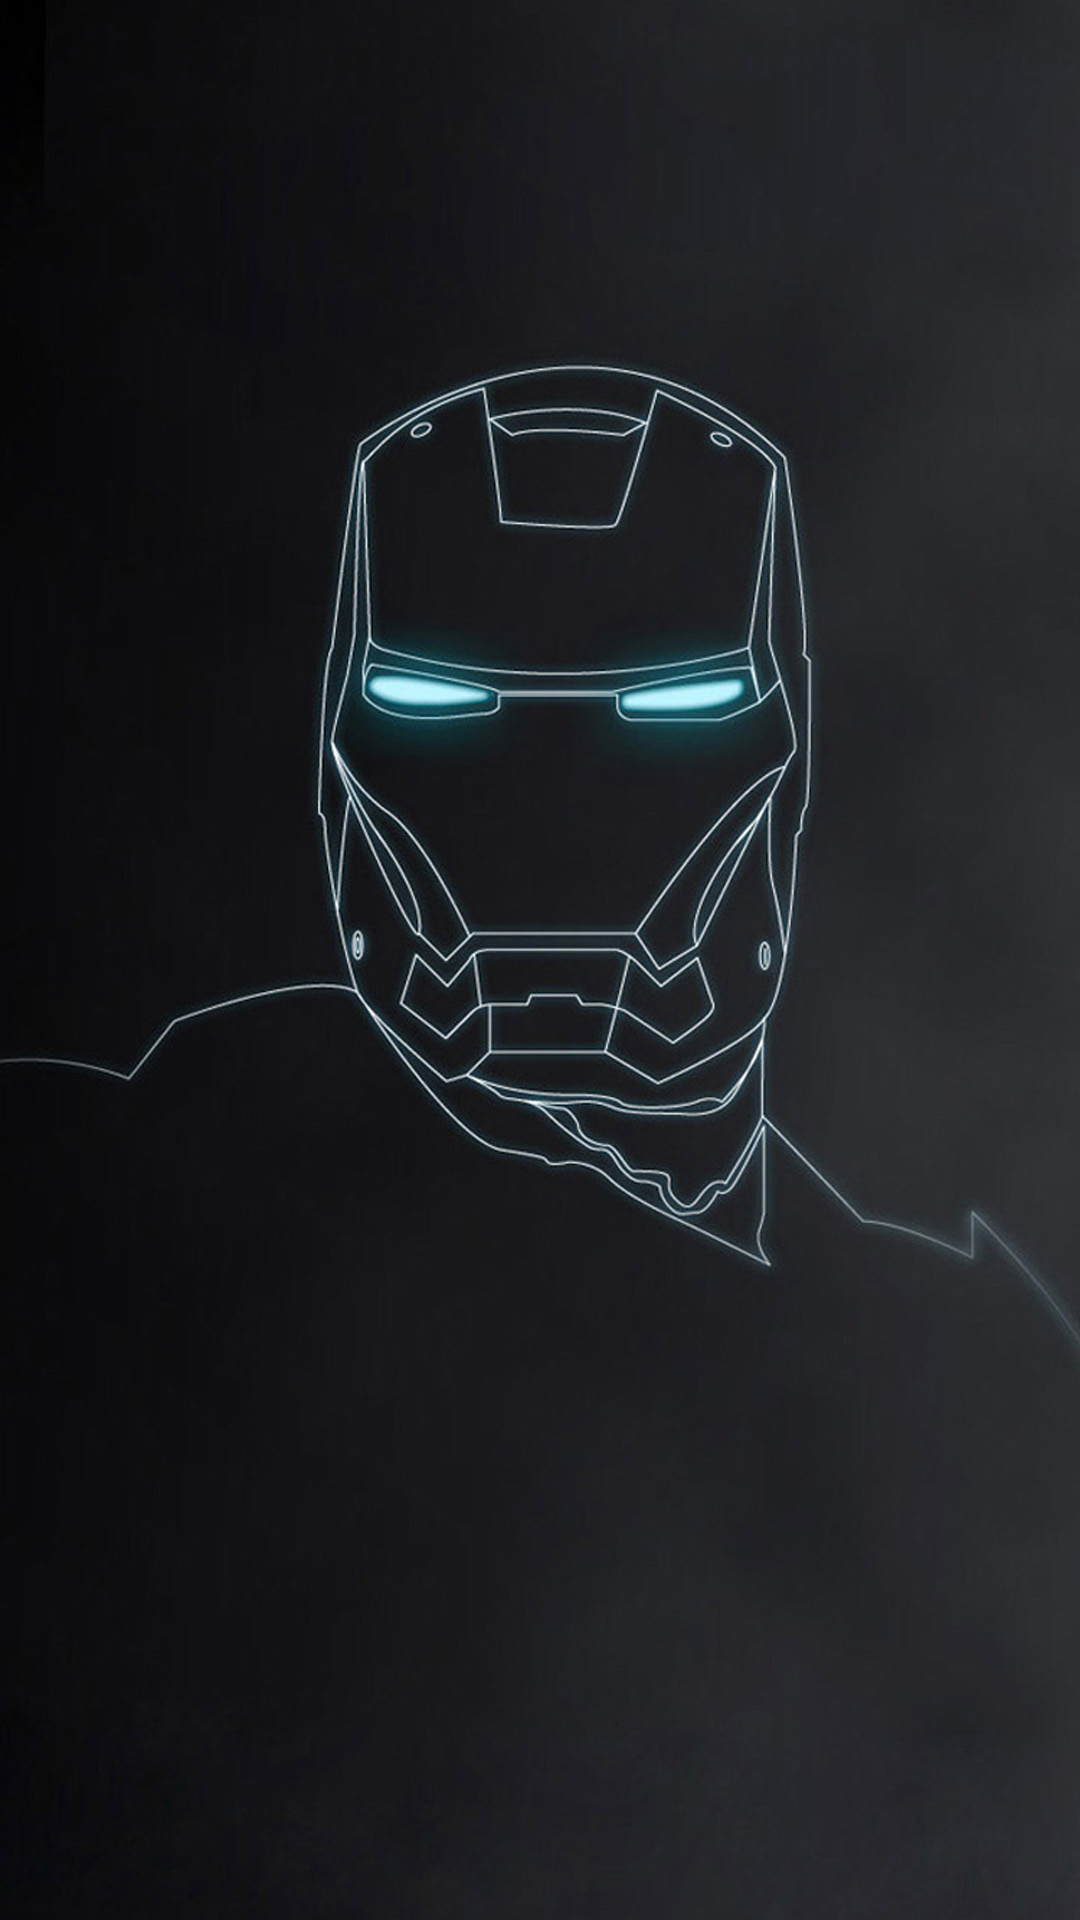 Animated wallpaper iphone 6 plus wallpapersafari - Iron man wallpaper anime ...